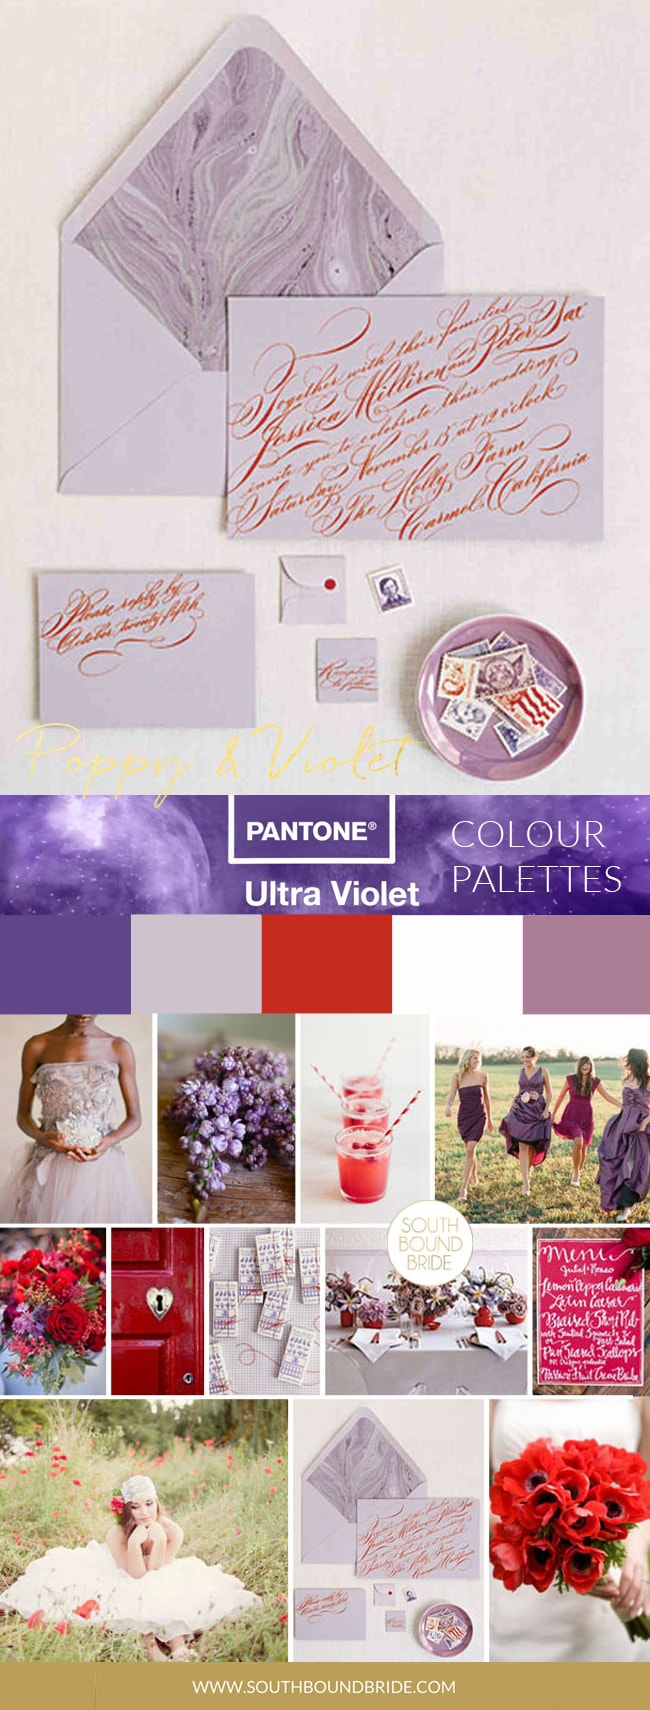 Pantone Colour of the Year 2018: Ultra Violet Inspiration Boards | SouthBound Bride